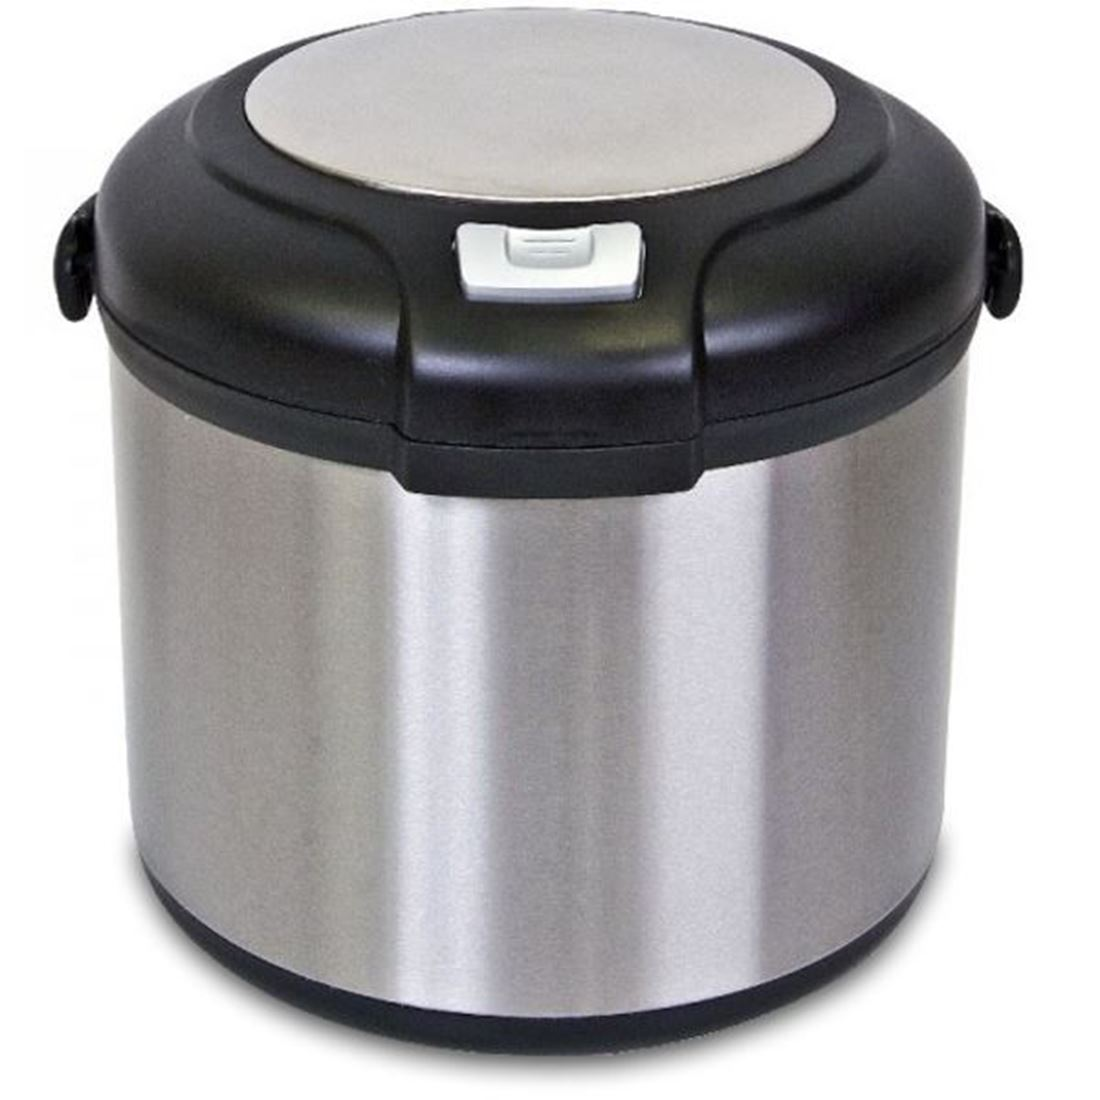 Picture of Campfire Travel Chef Thermal Cooker